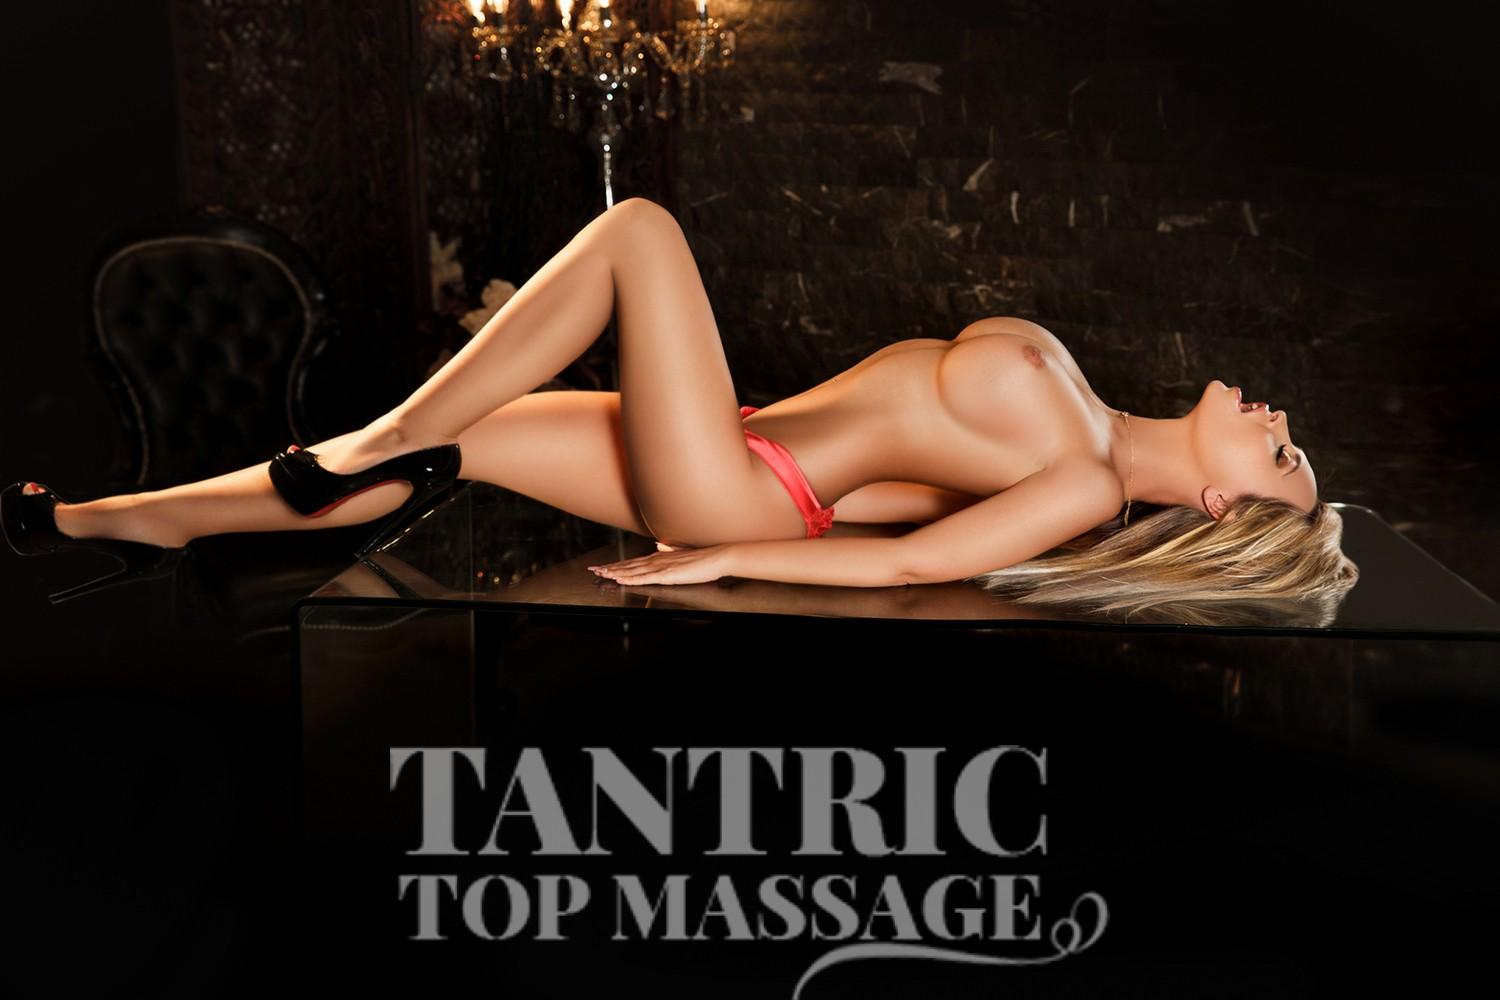 Sophie from Tantric Top Massage